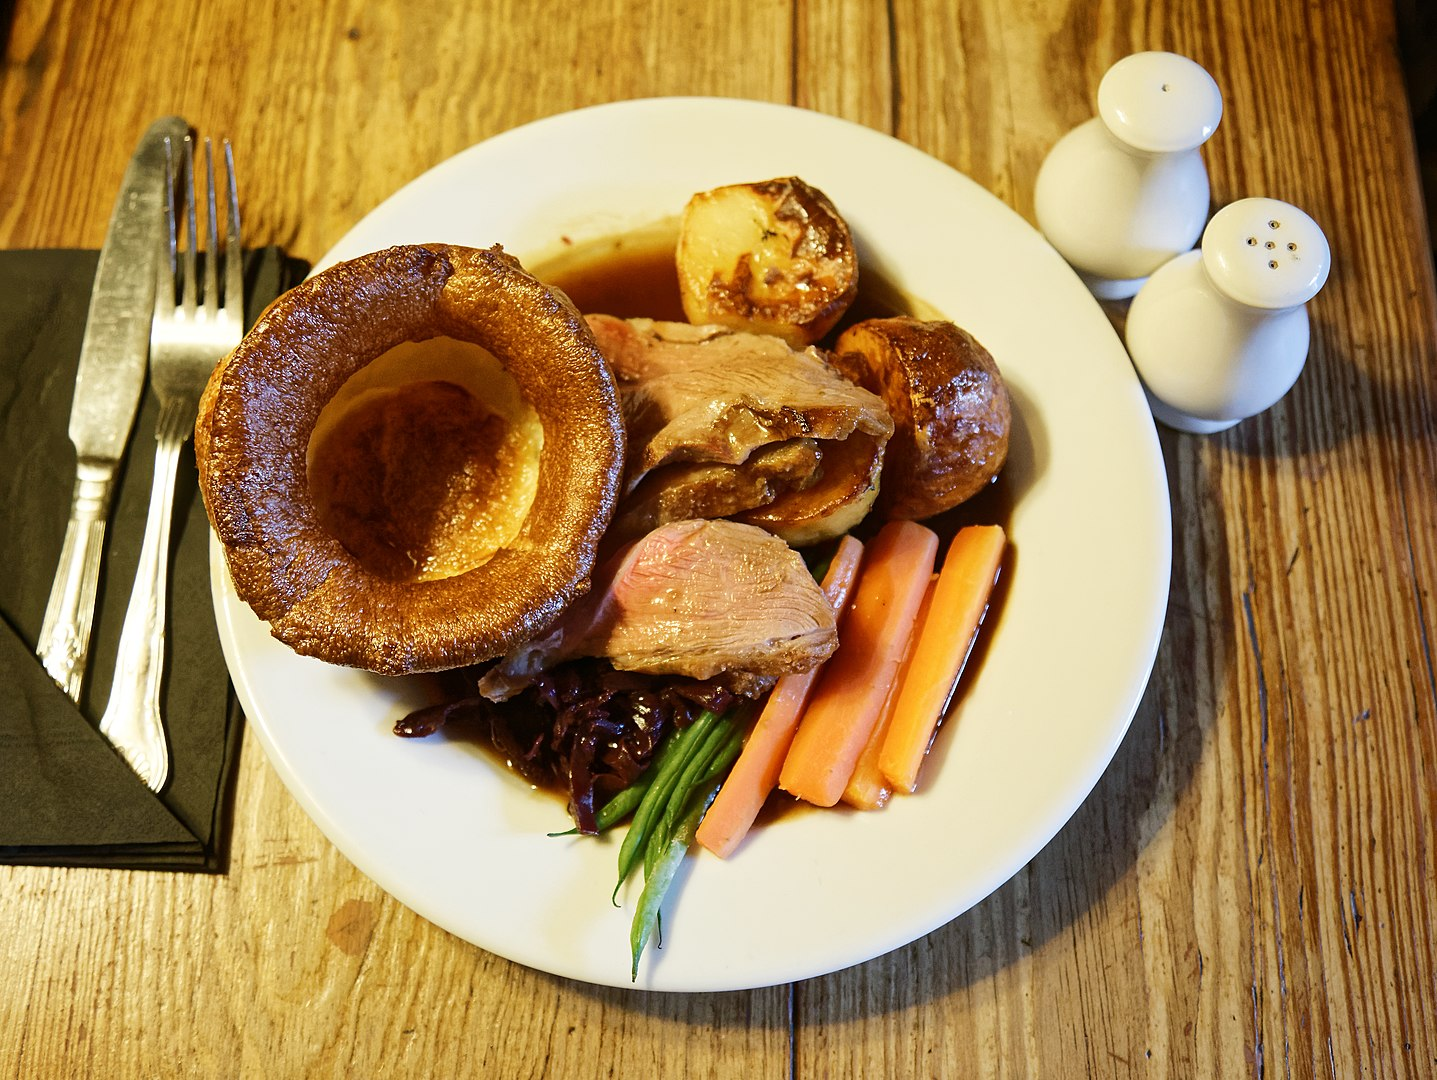 pub roast and Yorkshire pudding